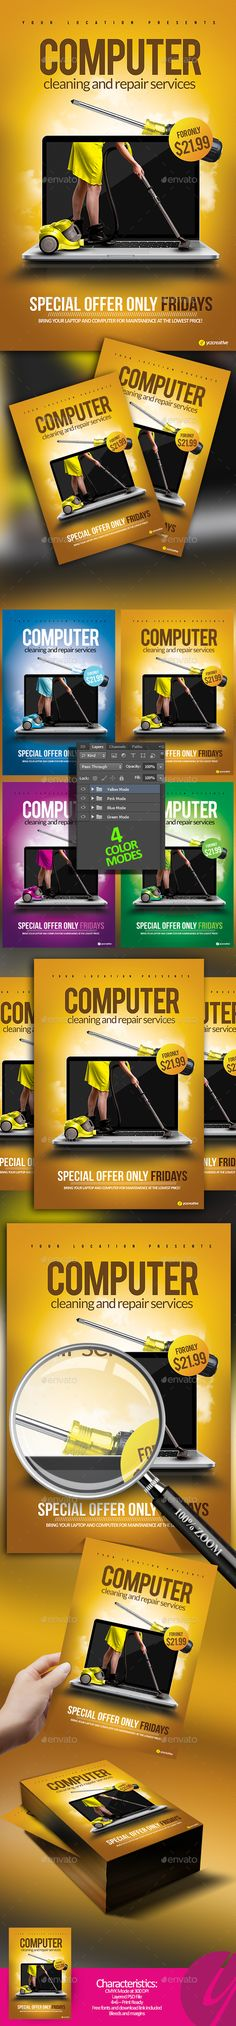 Computer Services Flyer — Photoshop PSD #monitor #computer repair • Download ➝ https://graphicriver.net/item/computer-services-flyer/19077931?ref=pxcr